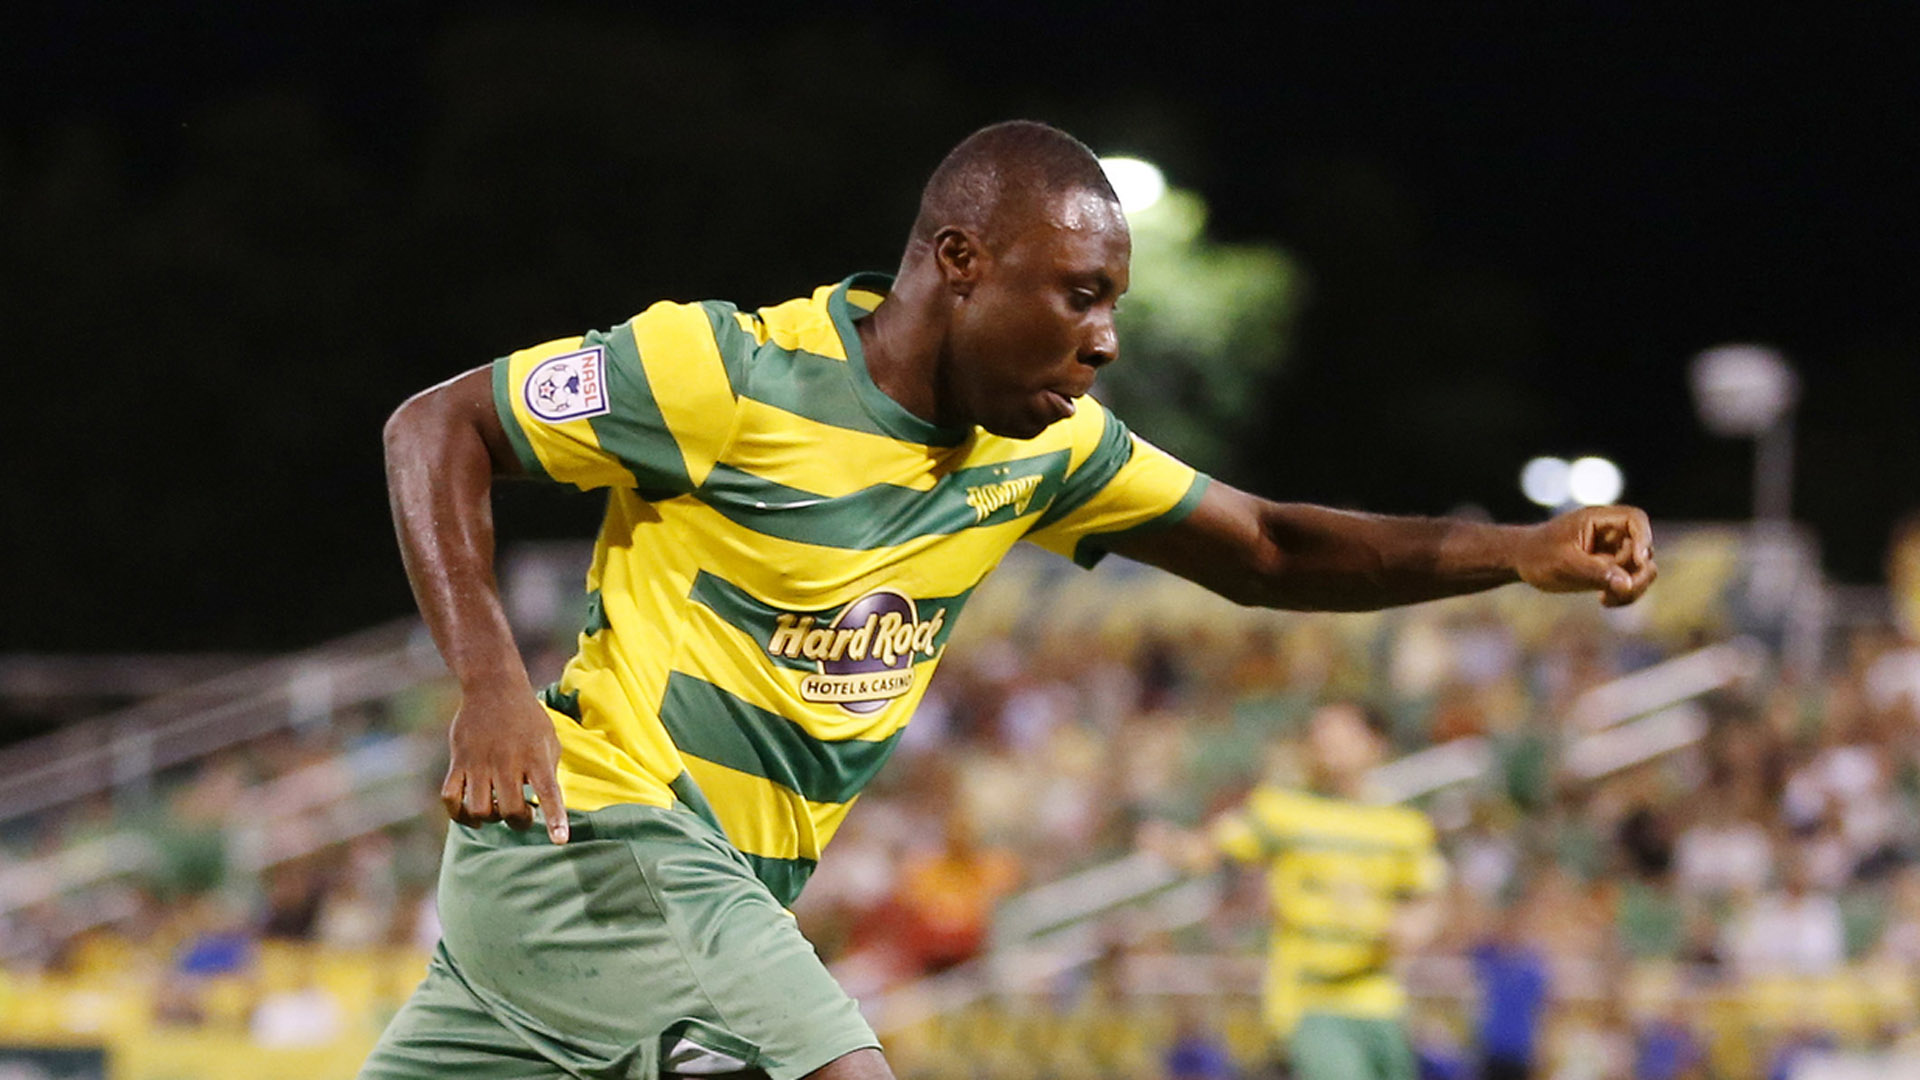 Freddy Adu in line for move to Polish club against manager's wishes